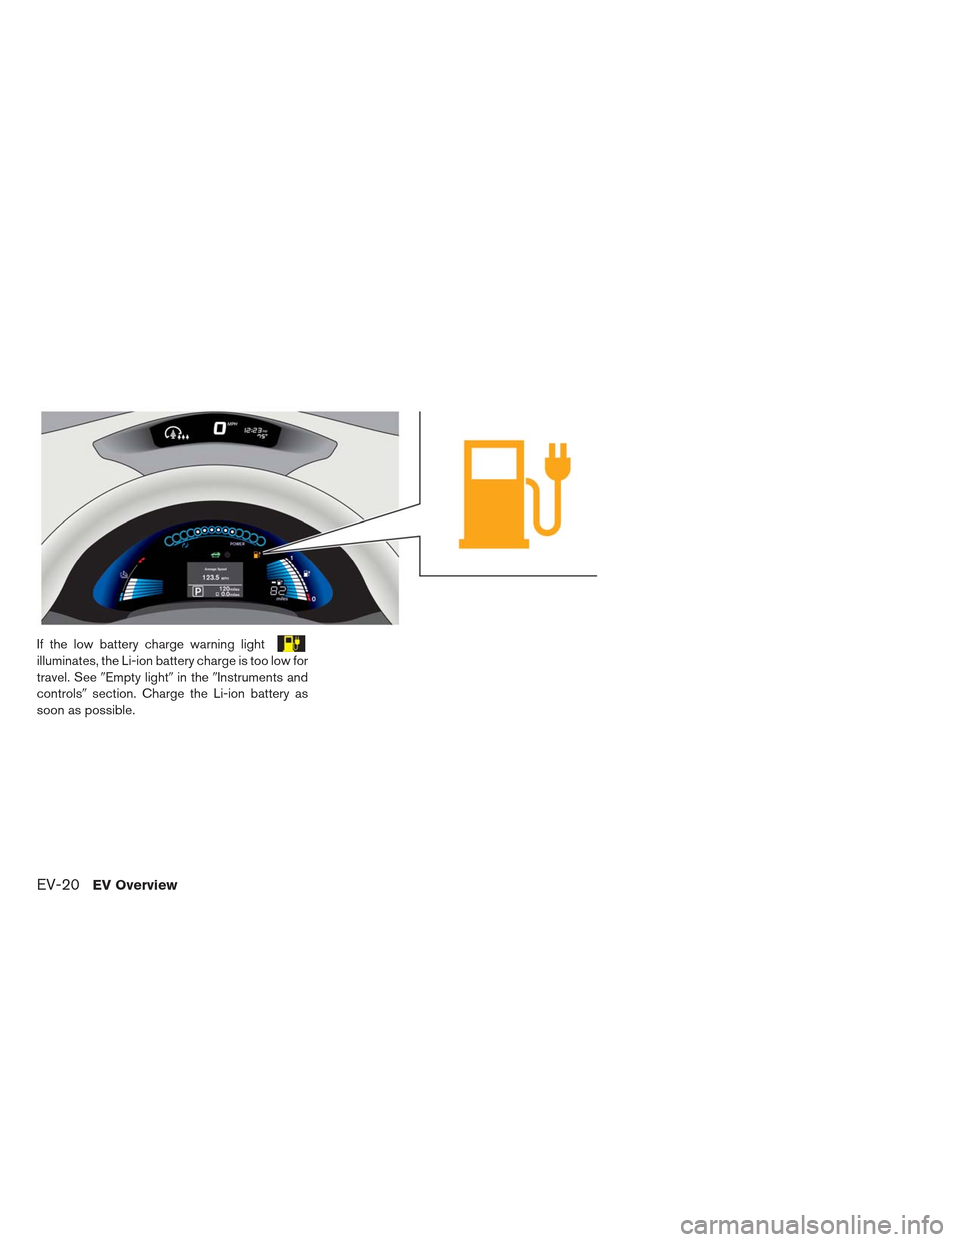 NISSAN LEAF 2013 1.G Owners Guide If the low battery charge warning light illuminates, the Li-ion battery charge is too low for travel. SeeEmpty light in theInstruments and controls section. Charge the Li-ion battery as soon as po